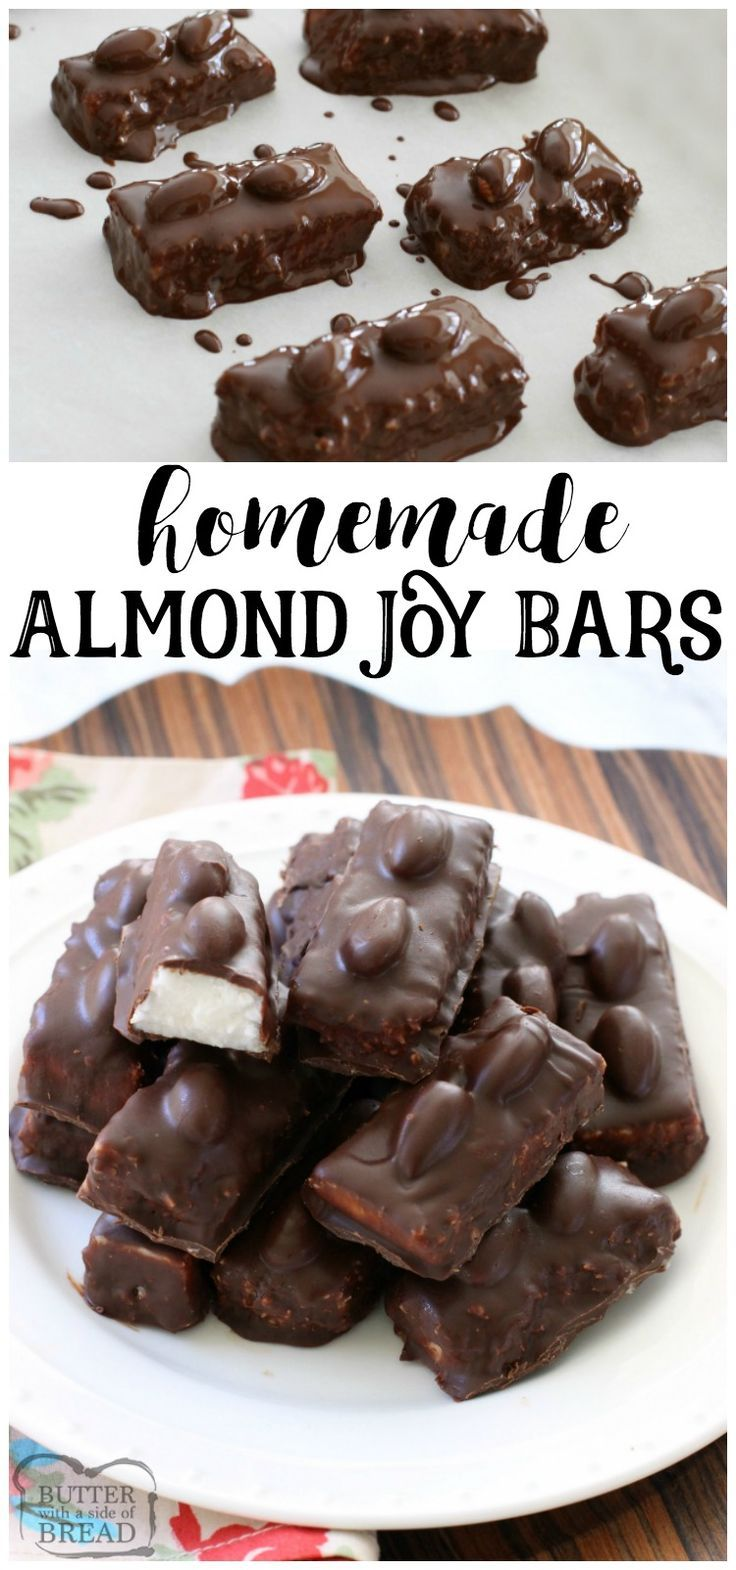 Homemade Almond Joy Bar recipe ~ 5 ingredients and healthier version included! So when you eat 5, you won't feel so bad. They melt in your mouth too- SO delicious! Easy dessert recipe made with chocolate and coconut by Butter With A Side of Bread via @ButterGirls